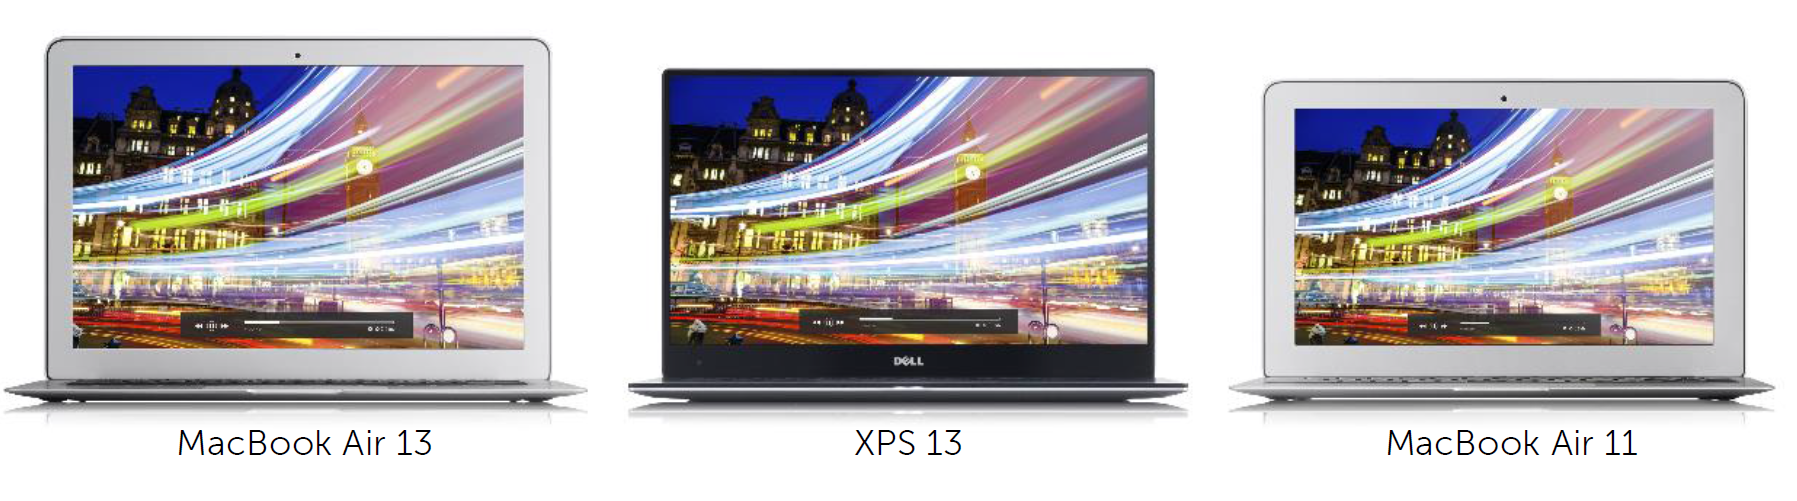 Design and Chassis - Dell XPS 13 Review